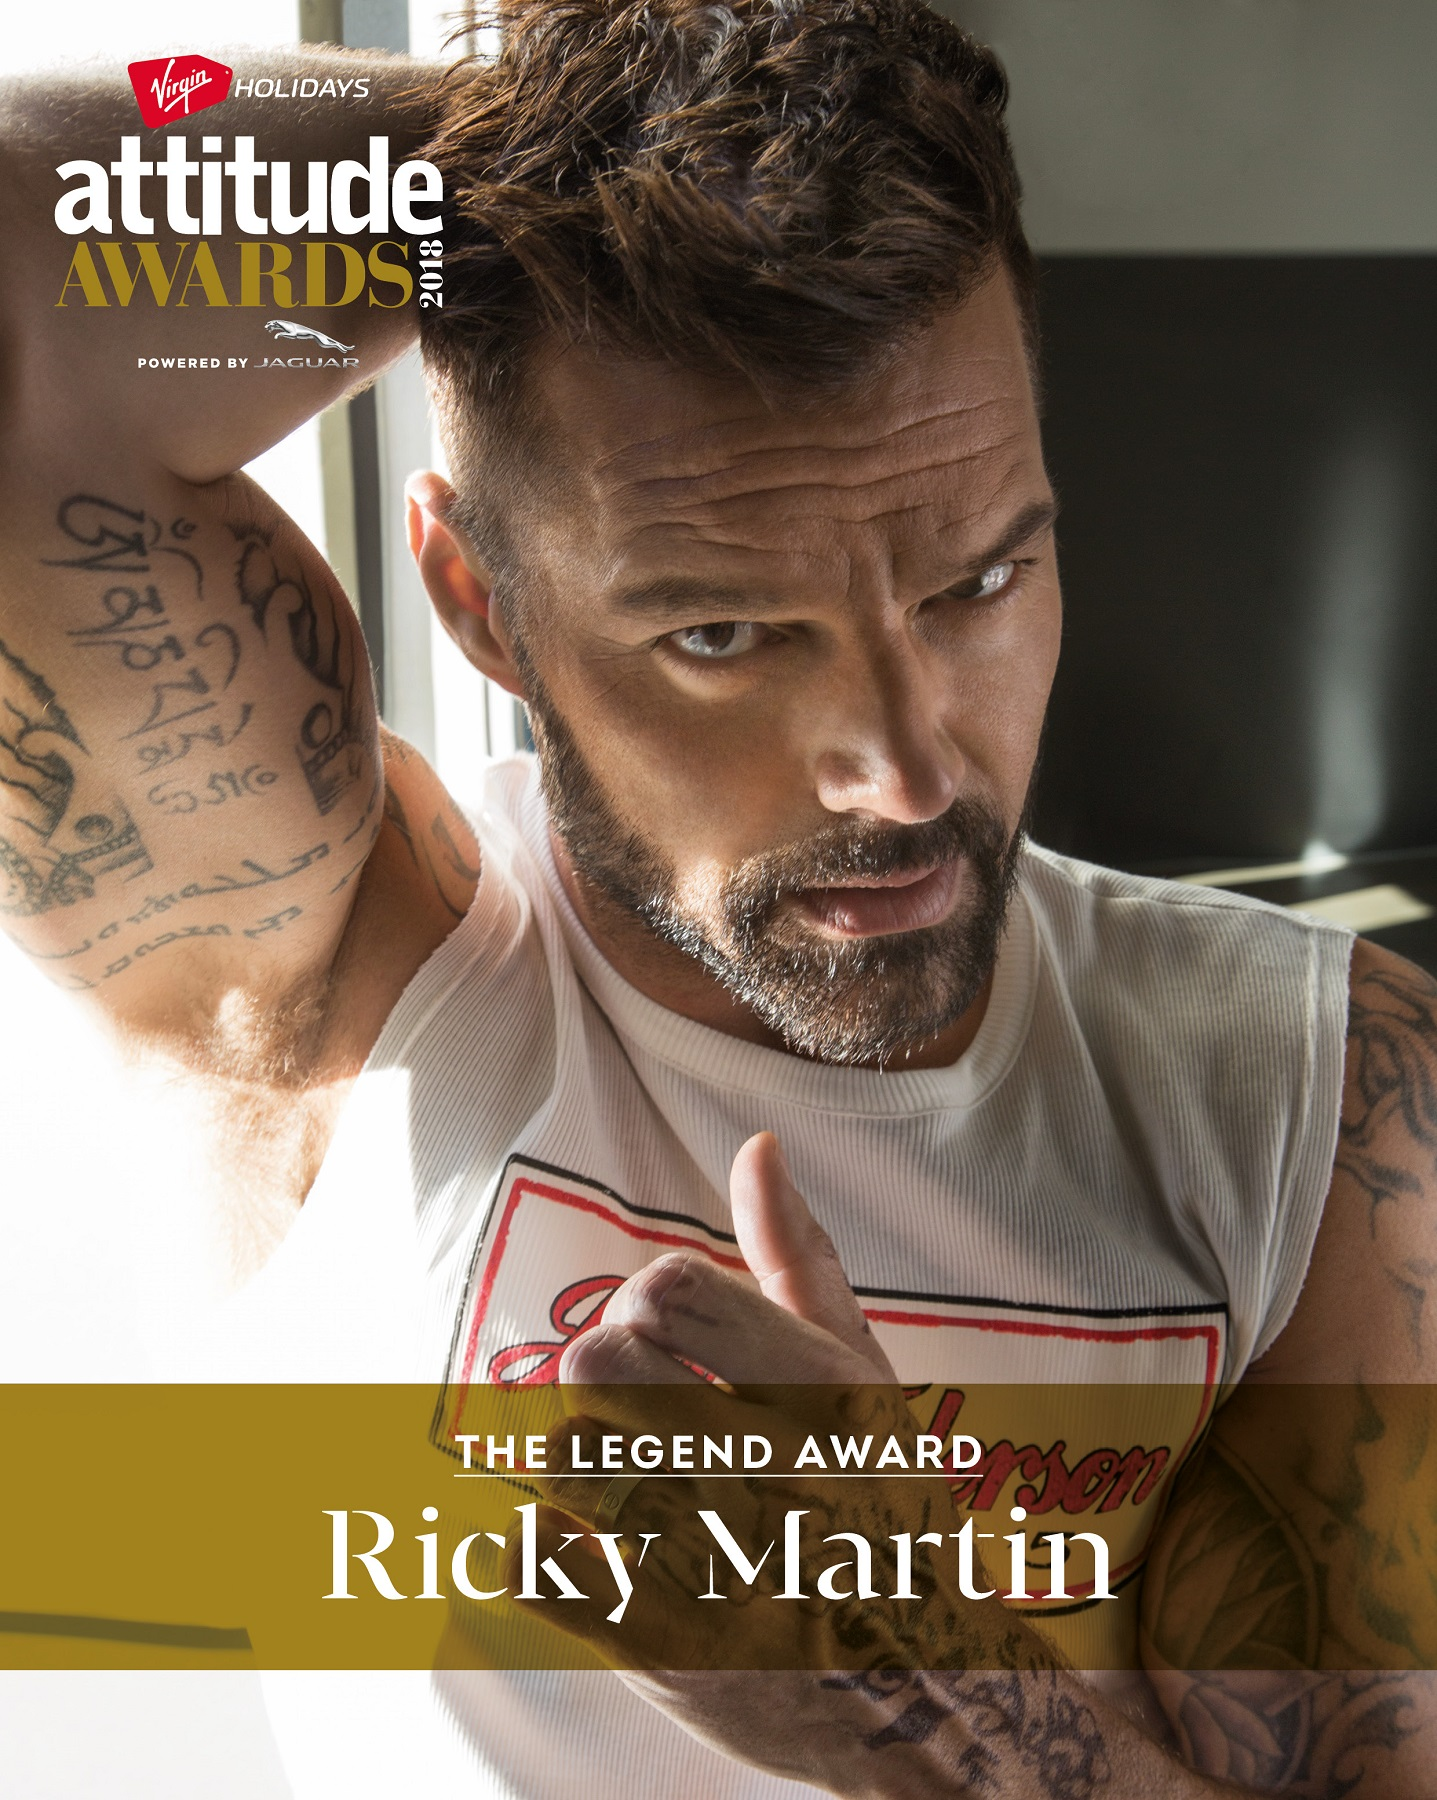 When Did Ricky Martin Come Out As Gay